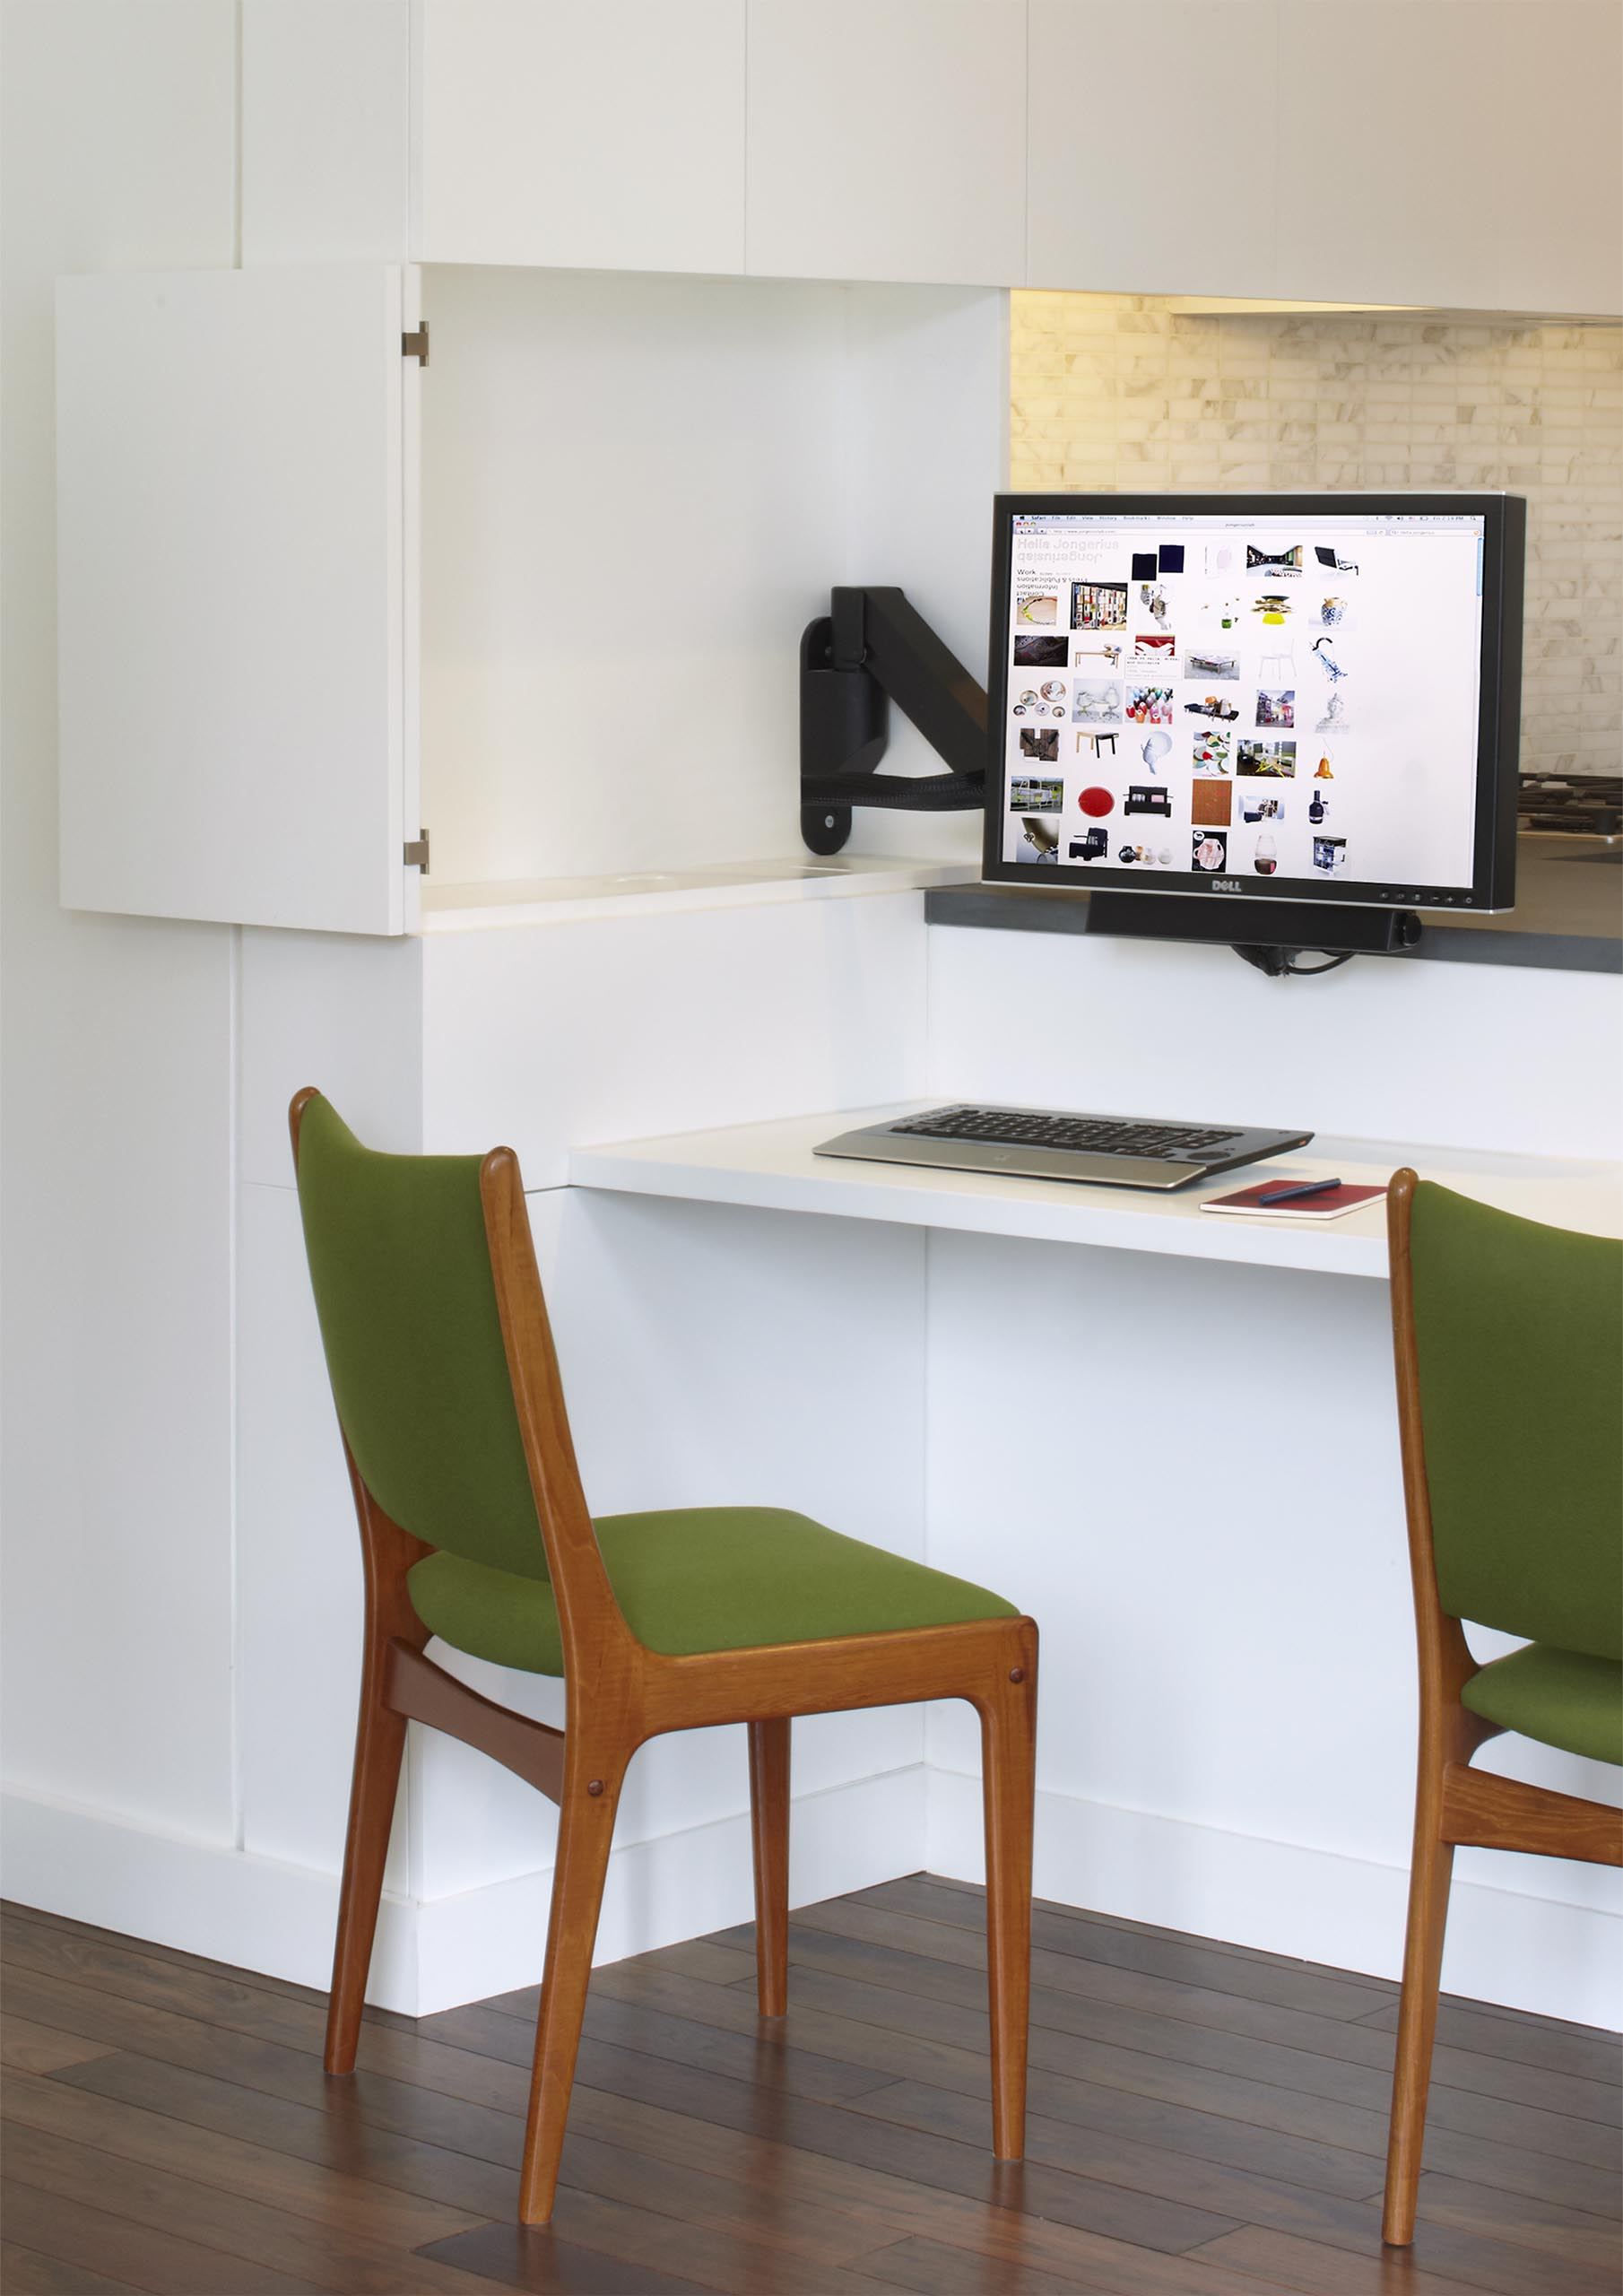 A computer monitor is hidden within the kitchen cabinets, creating a small home office.